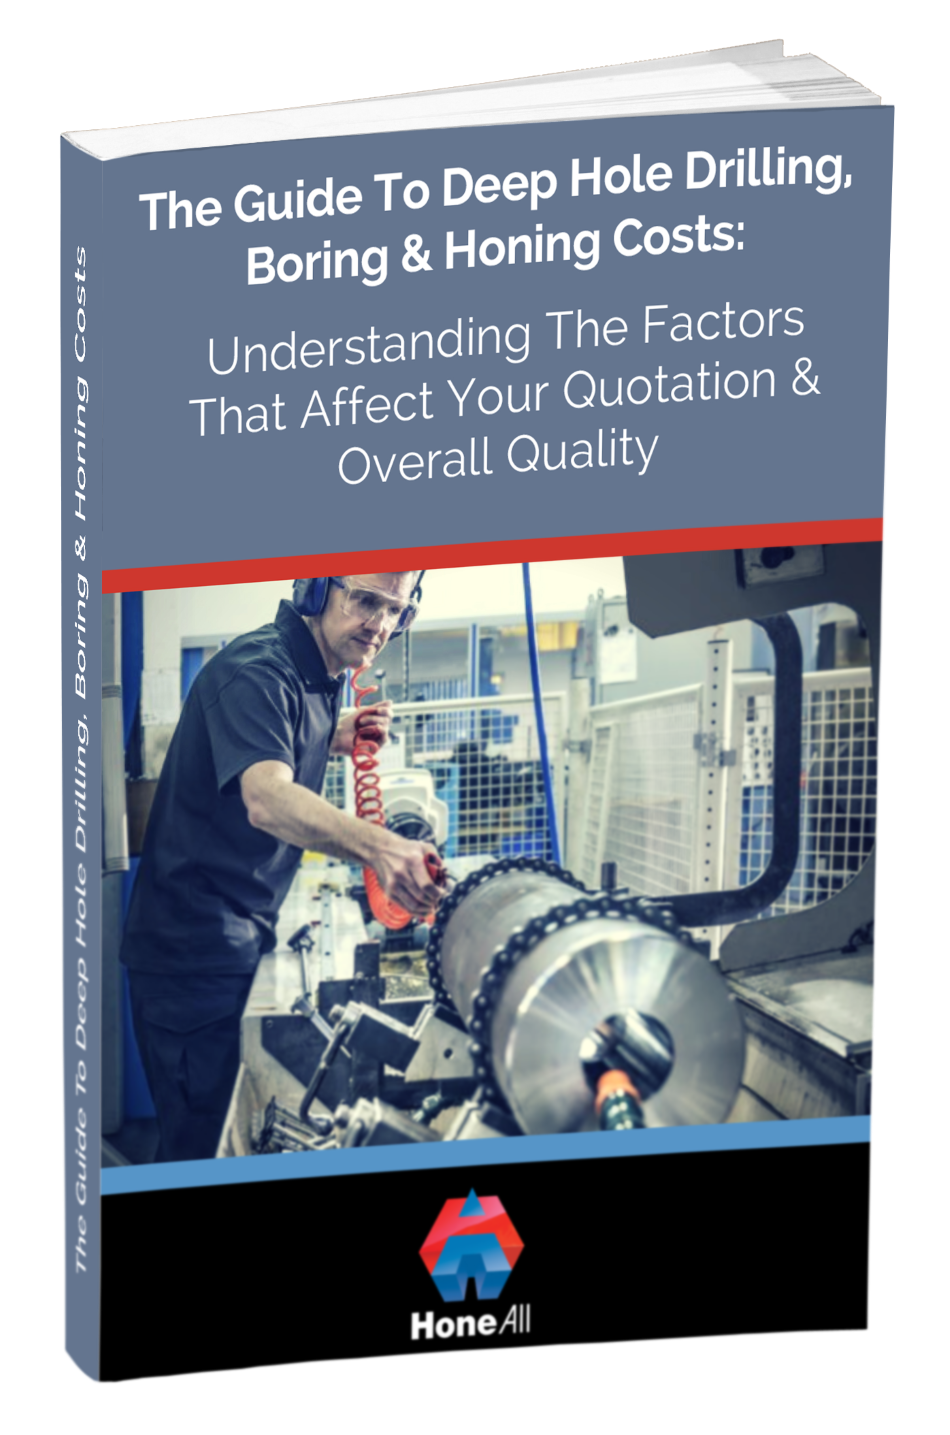 How To Save Money On Deep Hole Drilling, Boring & Honing: Download Our FREE Guide